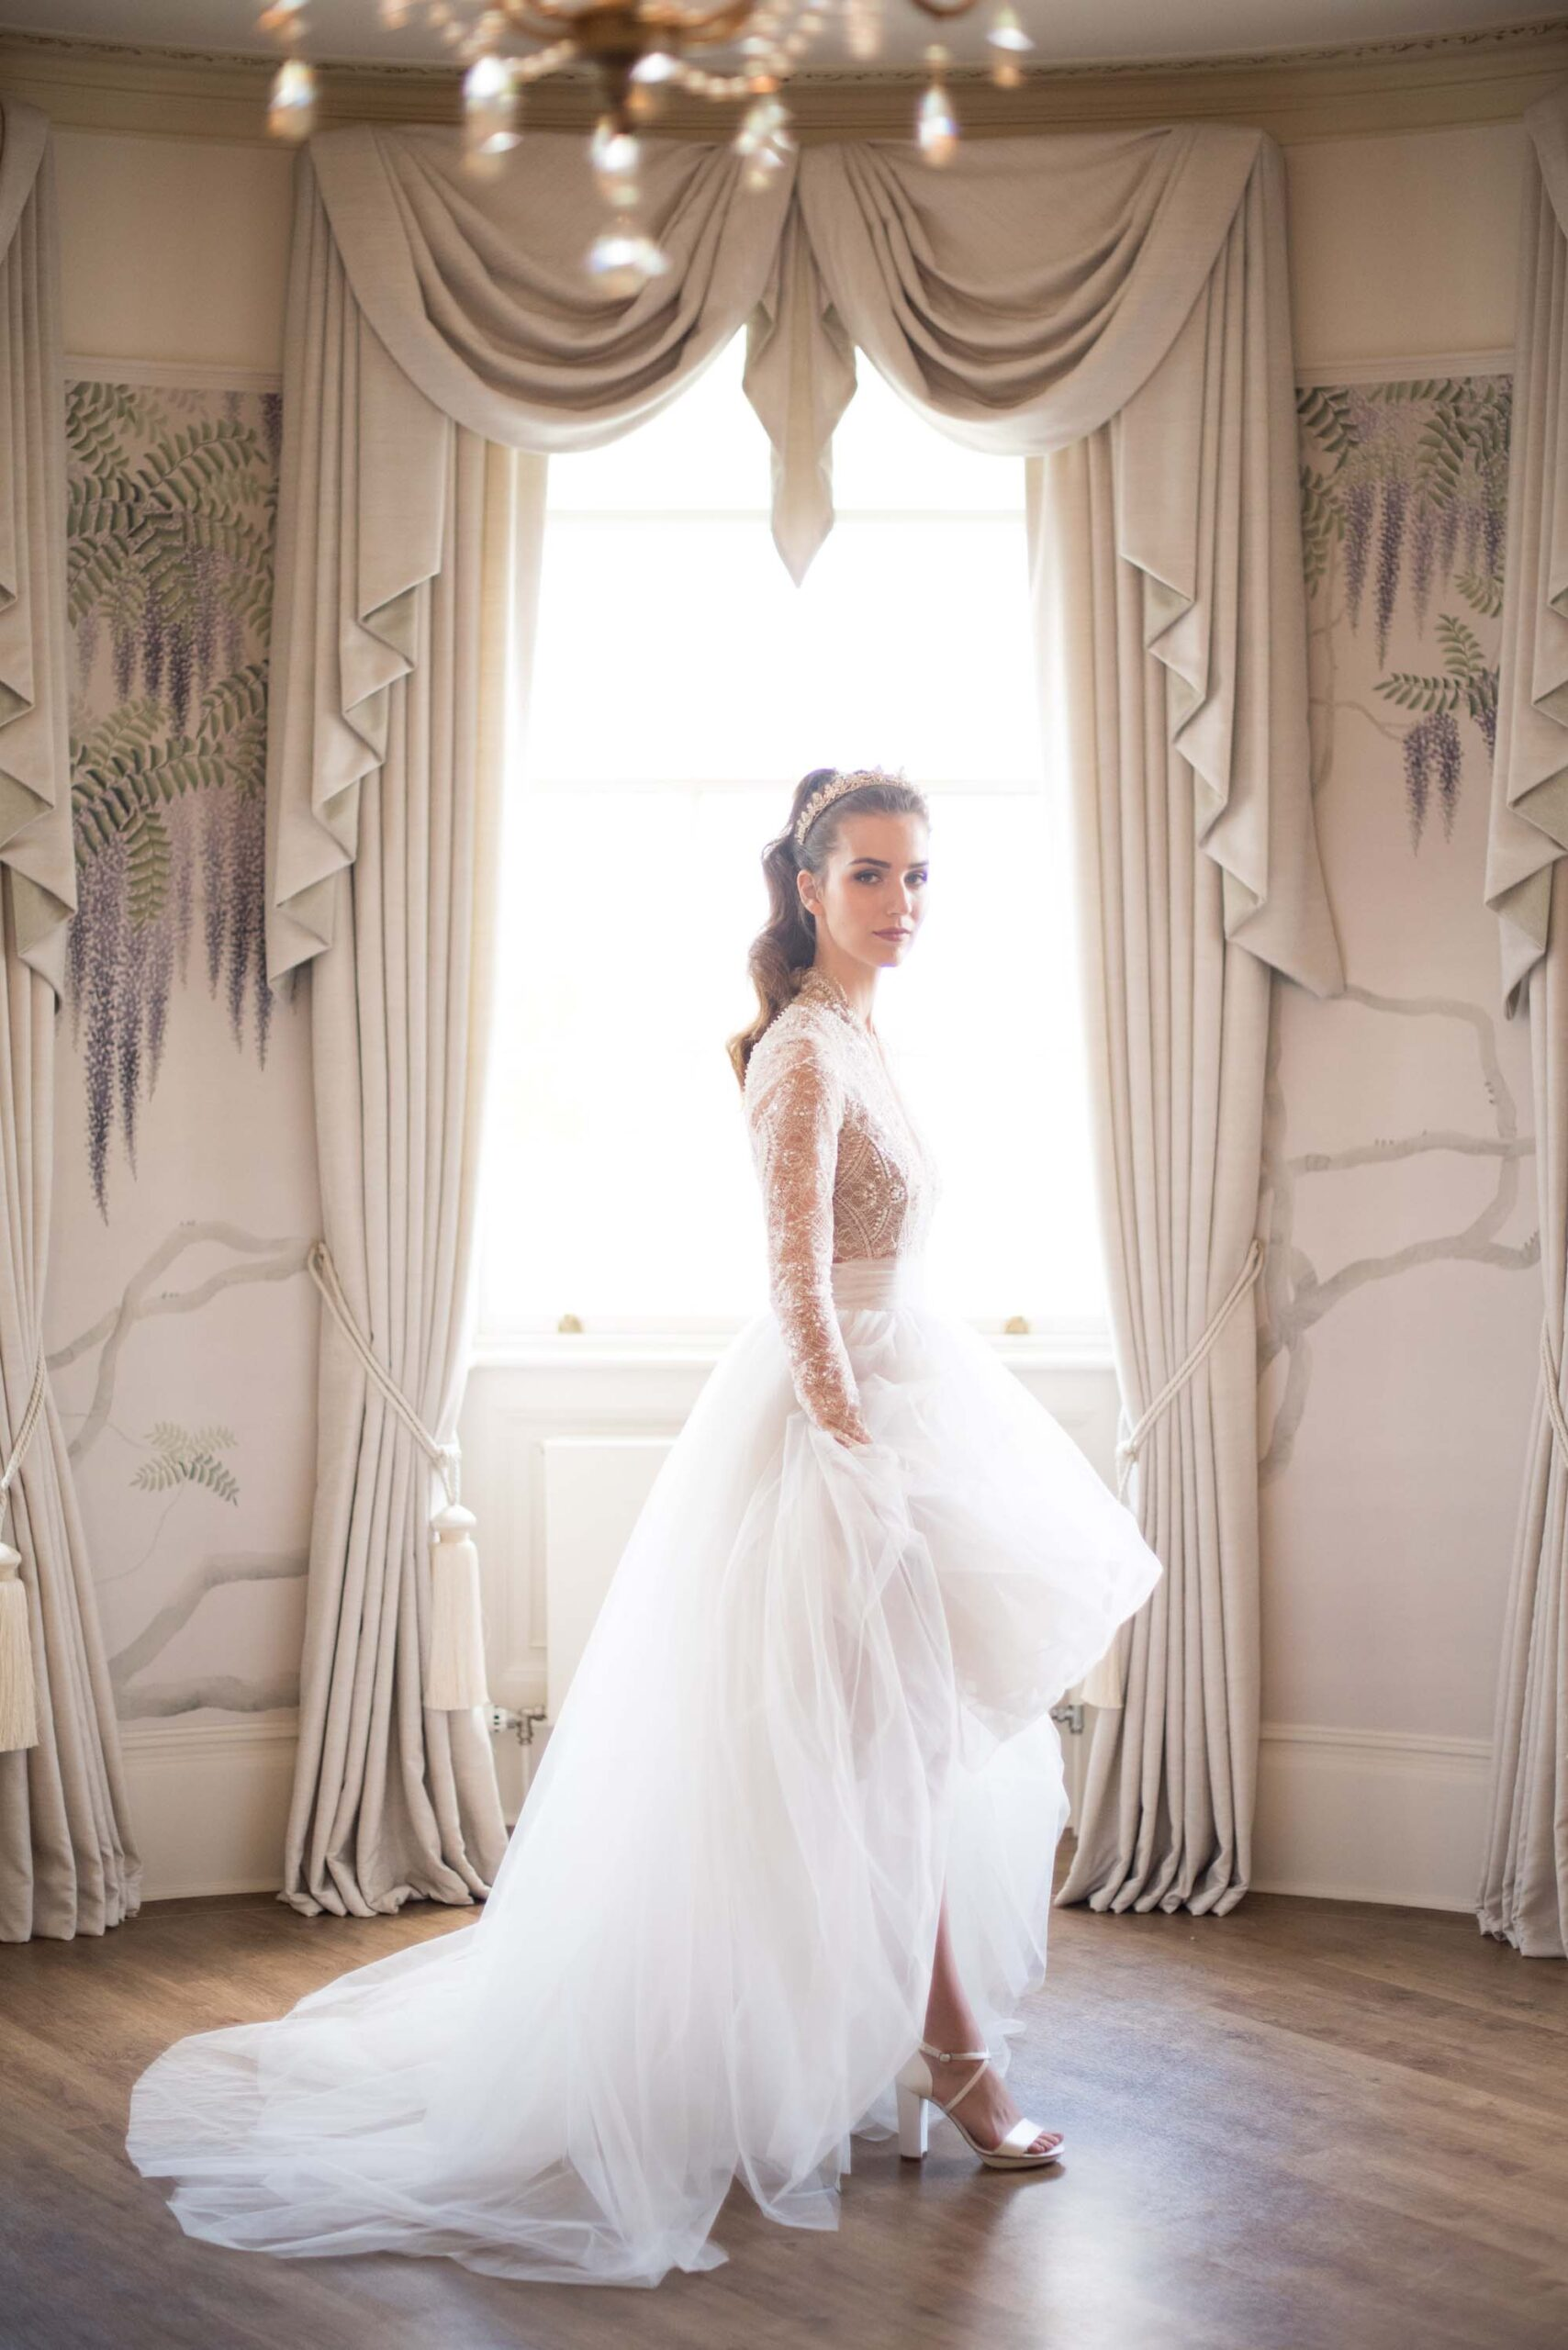 Hylands Estate country house wedding inspiration with Elegante by Michelle J, images by Claudine Hartzel Photography